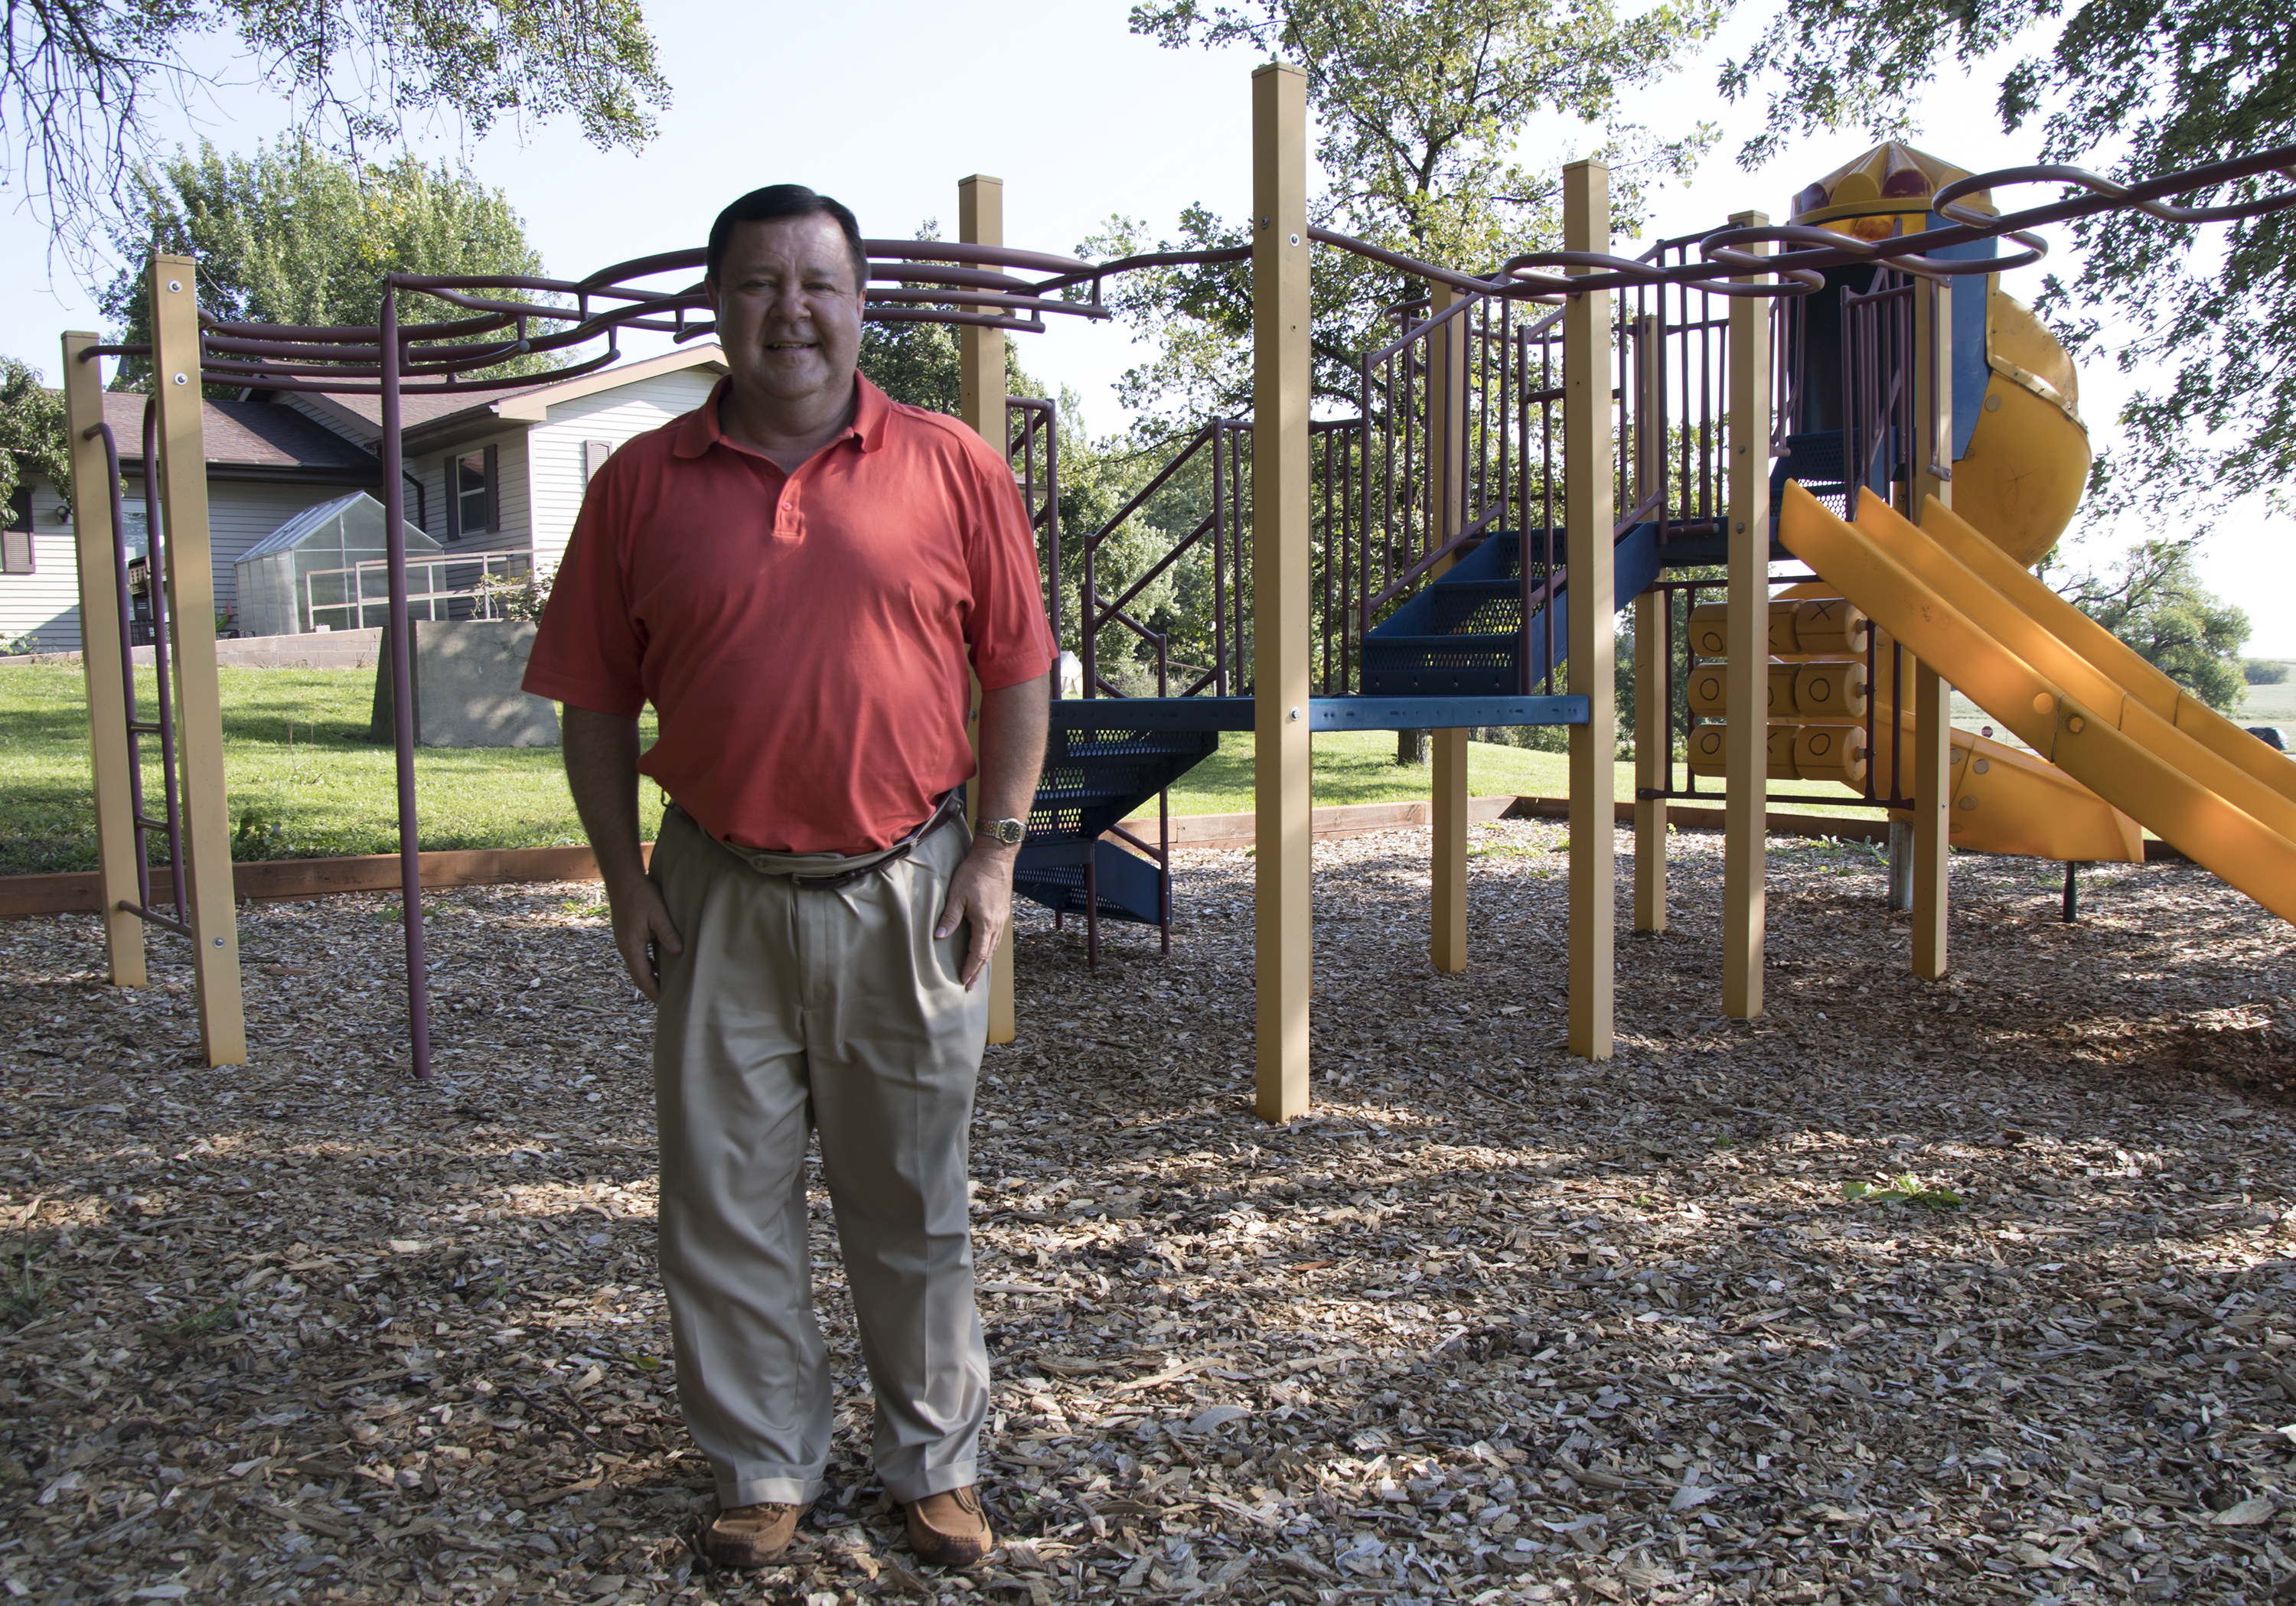 Malmo uses grant funds for playground